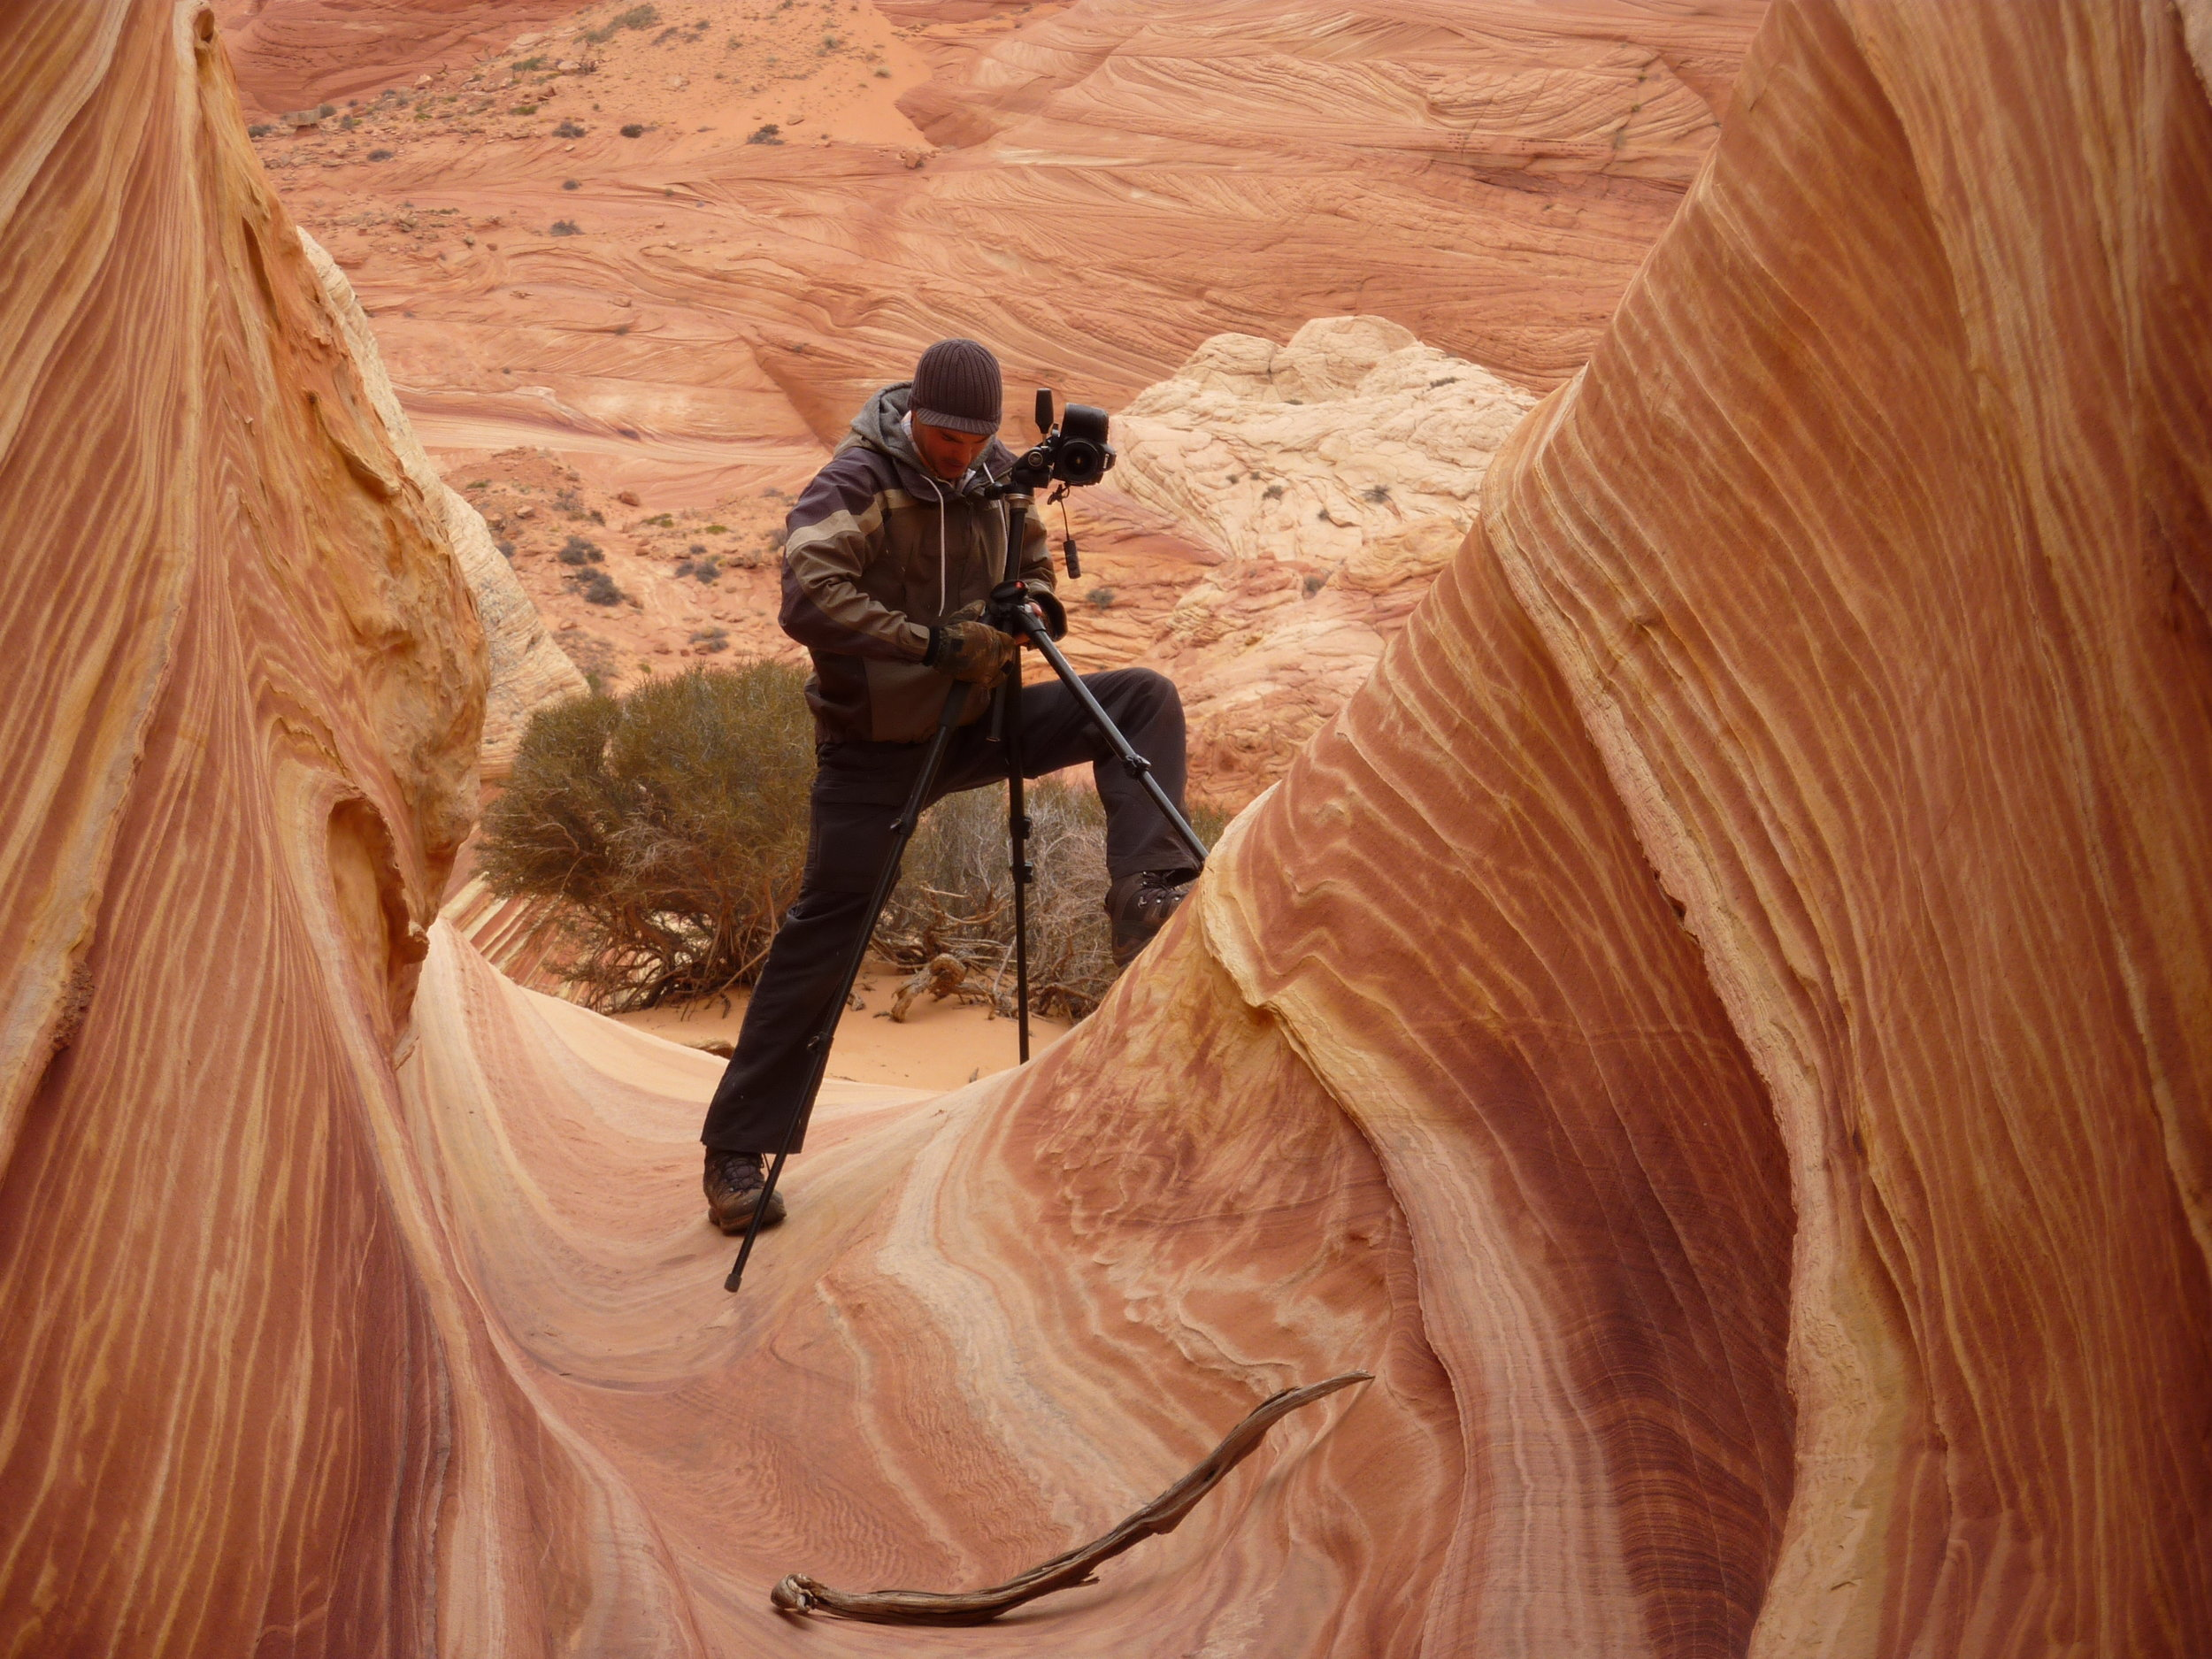 Battling with gear in the Coyotte Buttes Wilderness